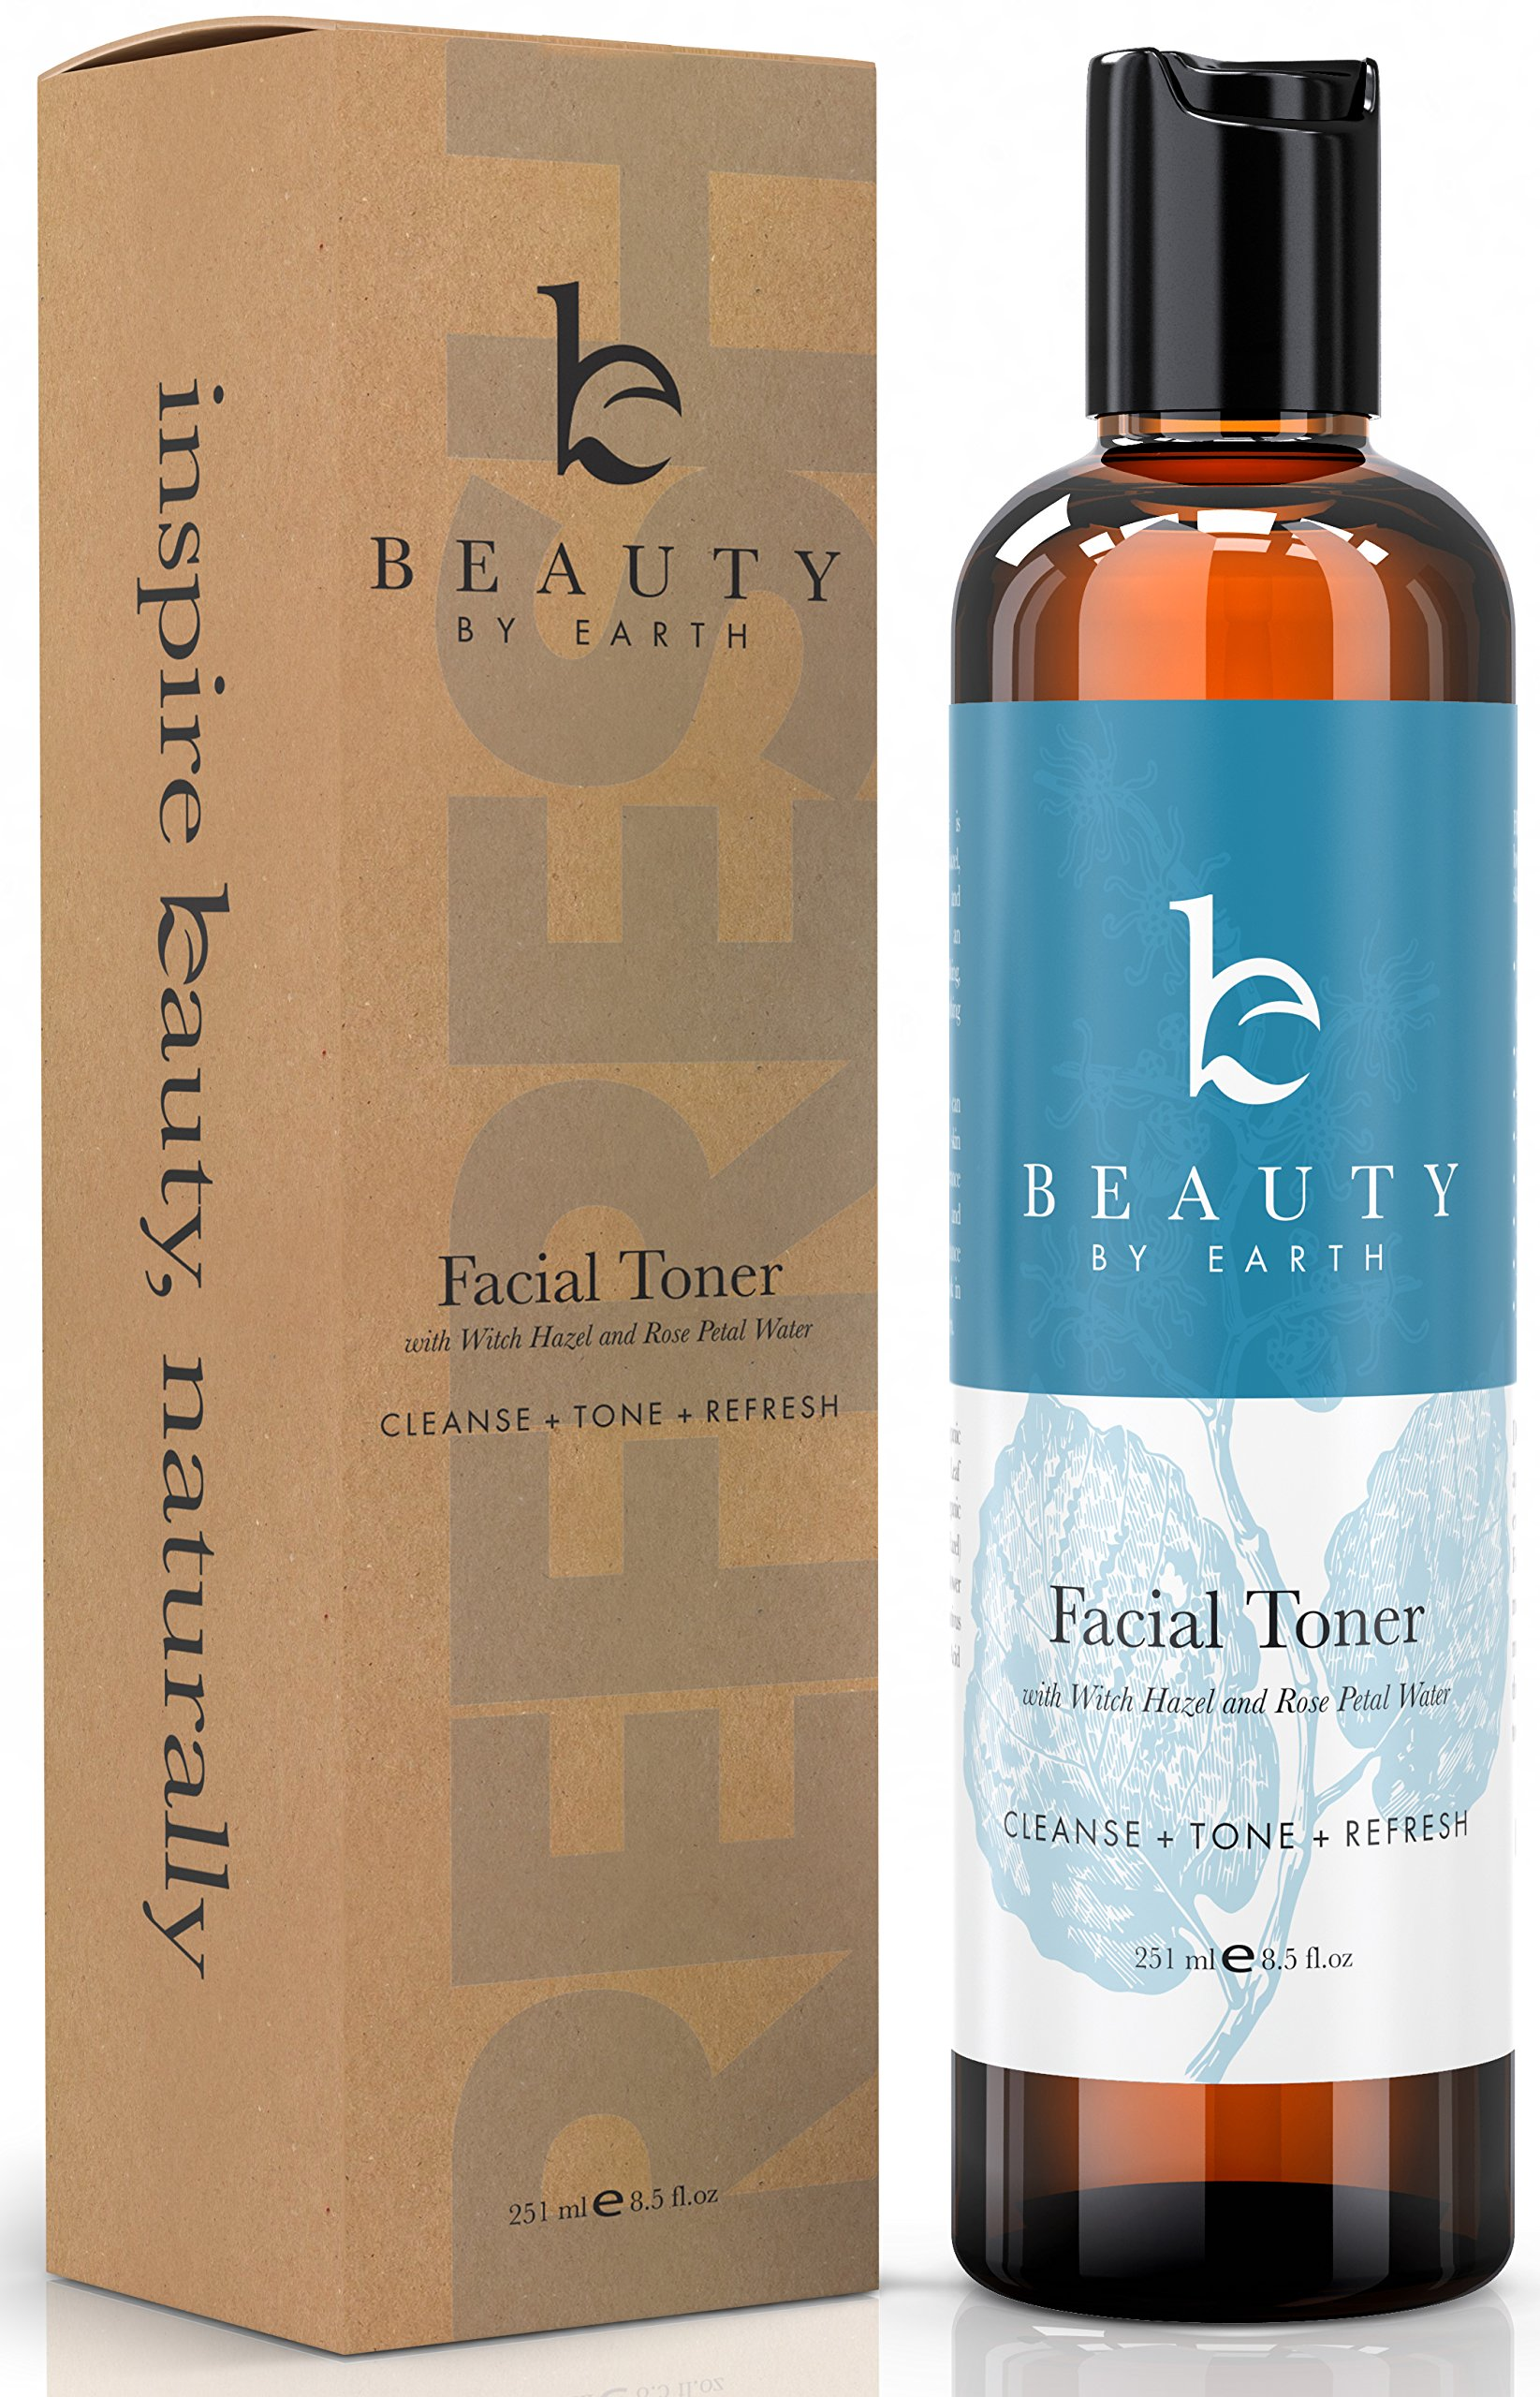 Facial Toner with Organic and Natural Witch Hazel Rose Water Astringent - Best Hydrating and Clarifying Face Spray for Daily Use, No Alcohol or Oil, Skin Cleansing for Men and Women, 8.5oz